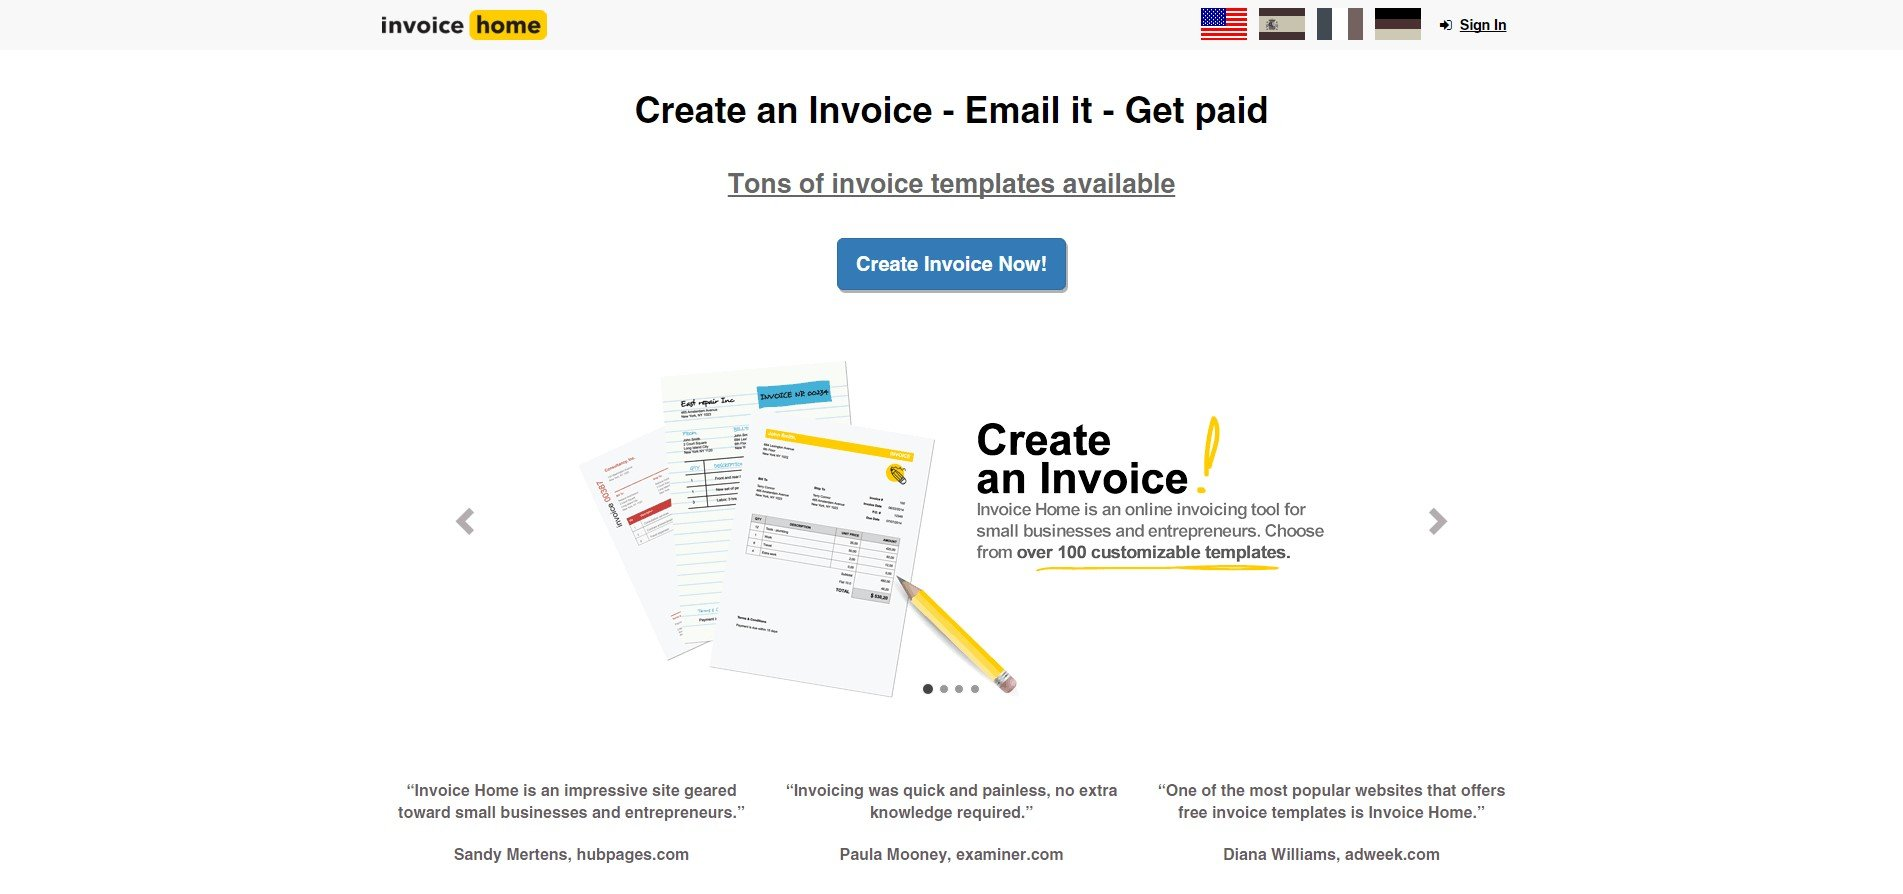 invoice home alternatives and similar websites and apps